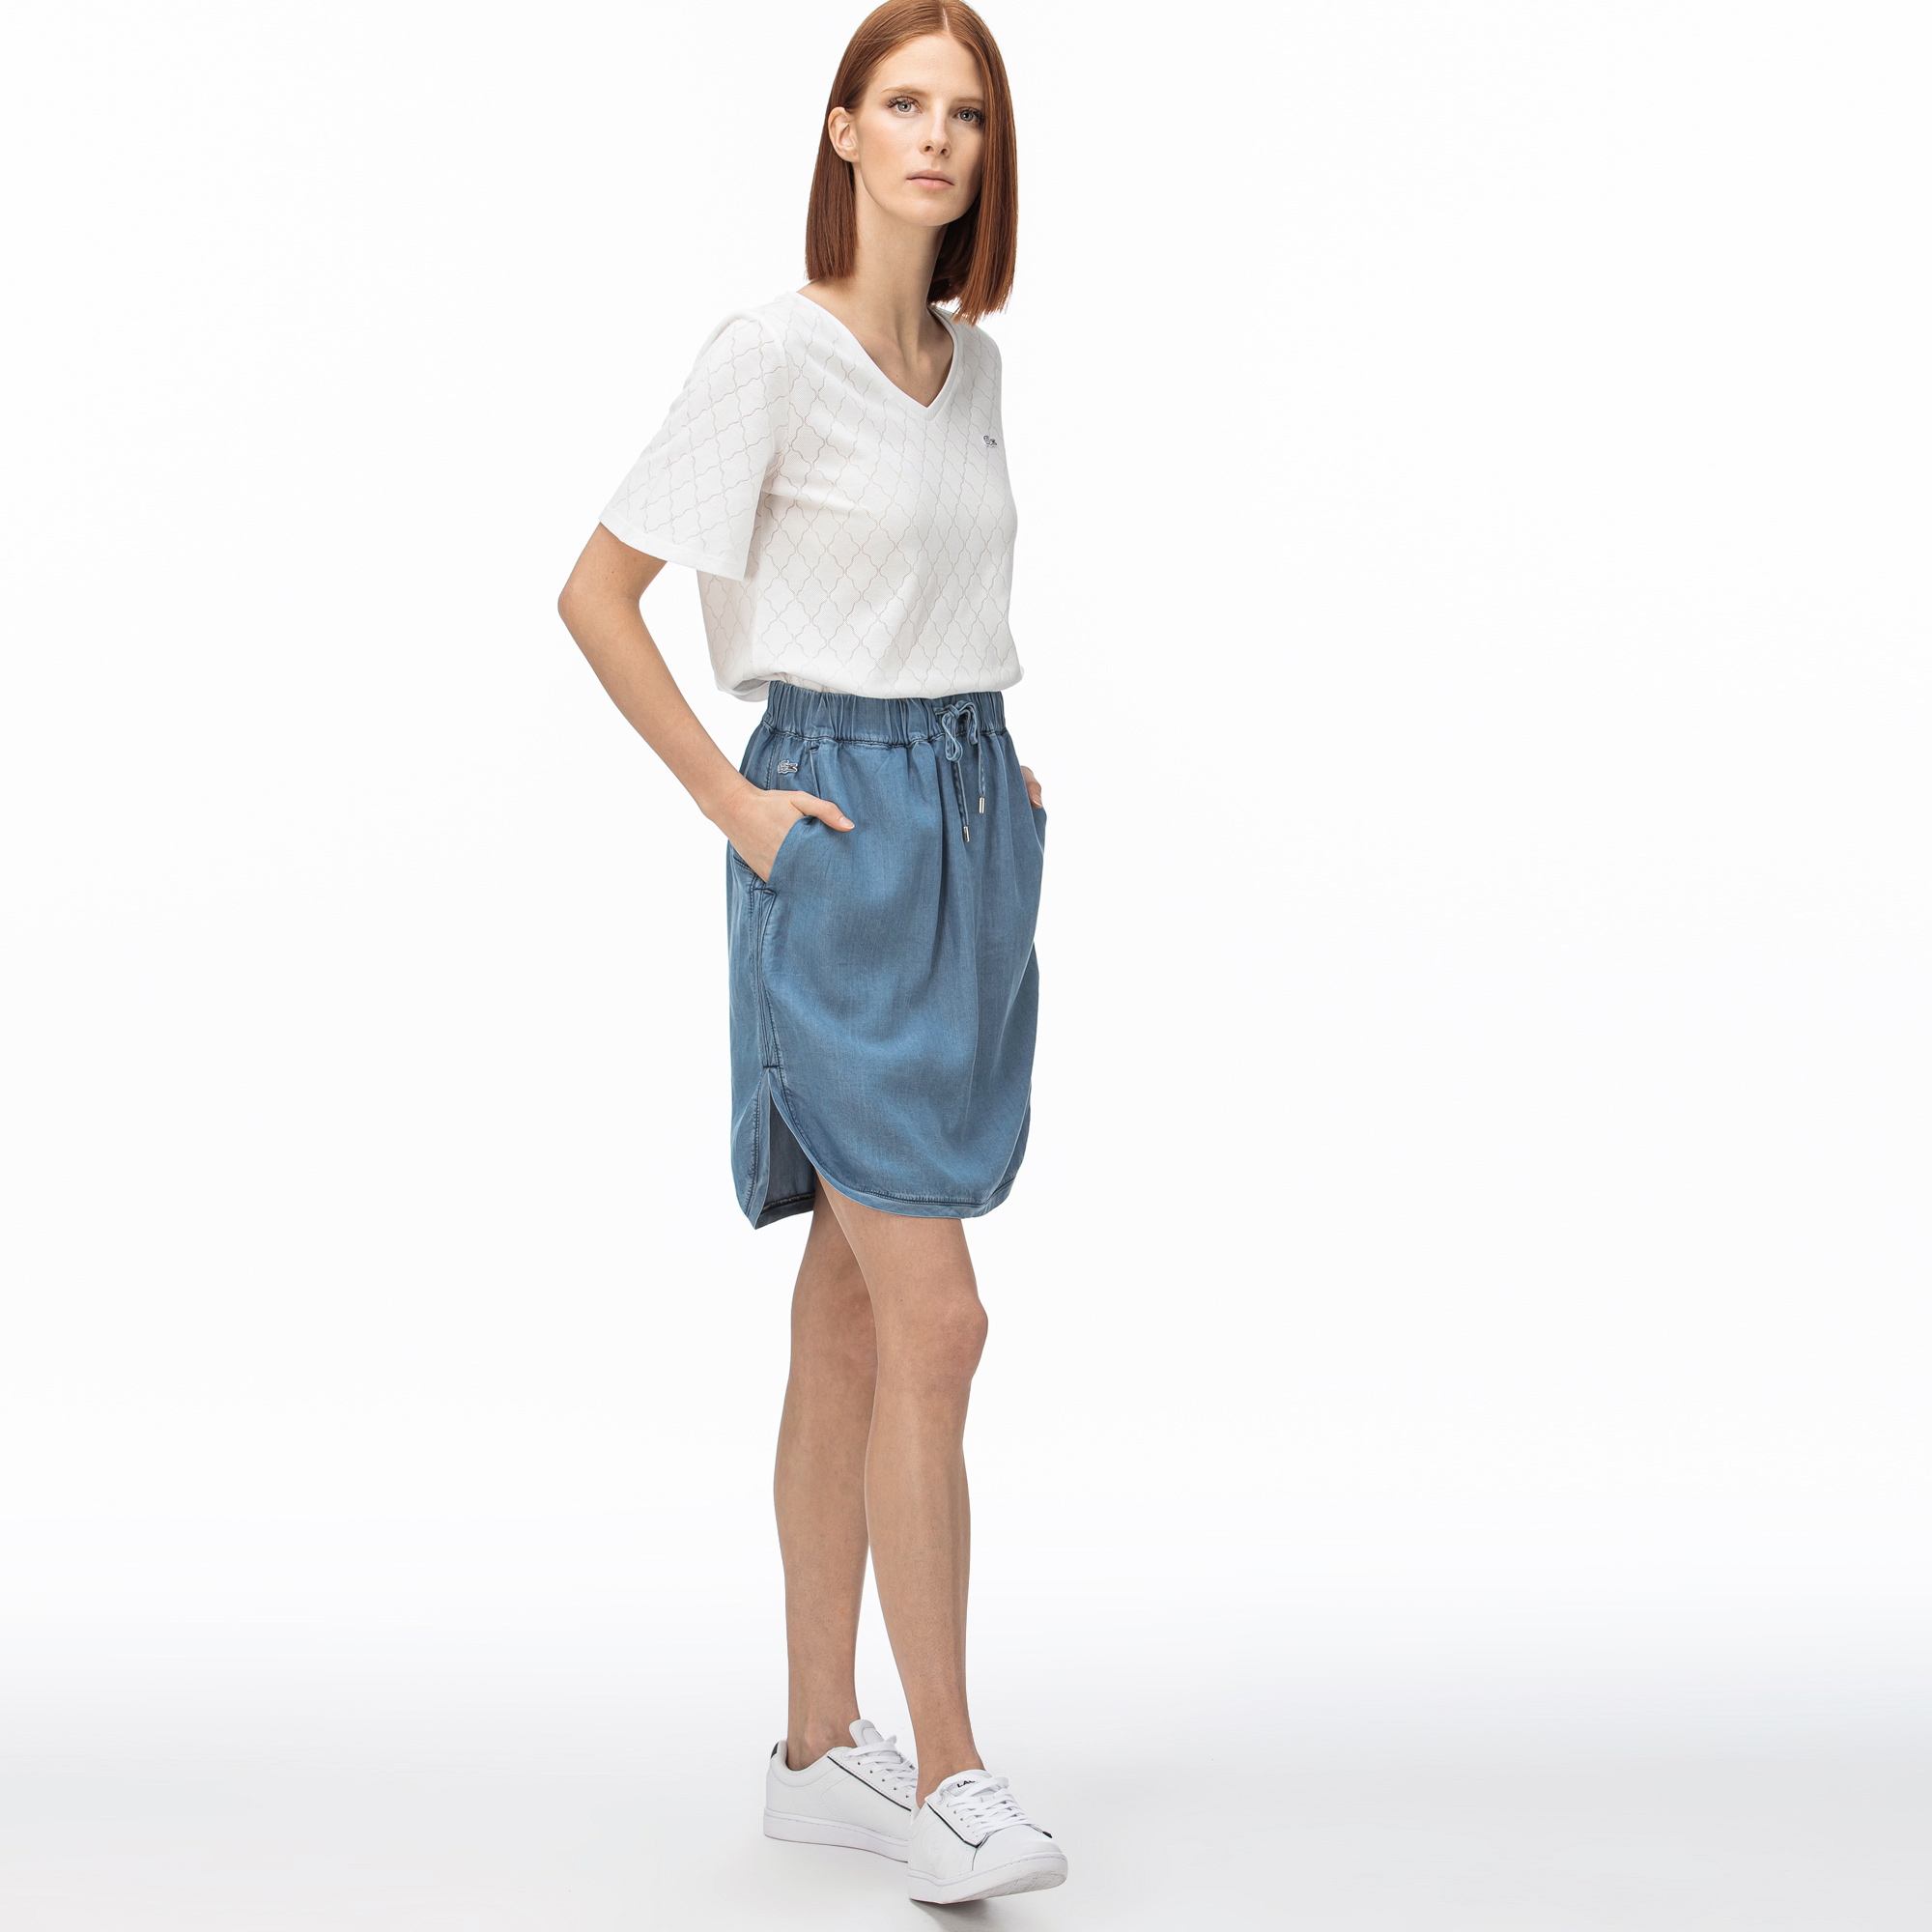 Lacoste Women's Denim Skirt